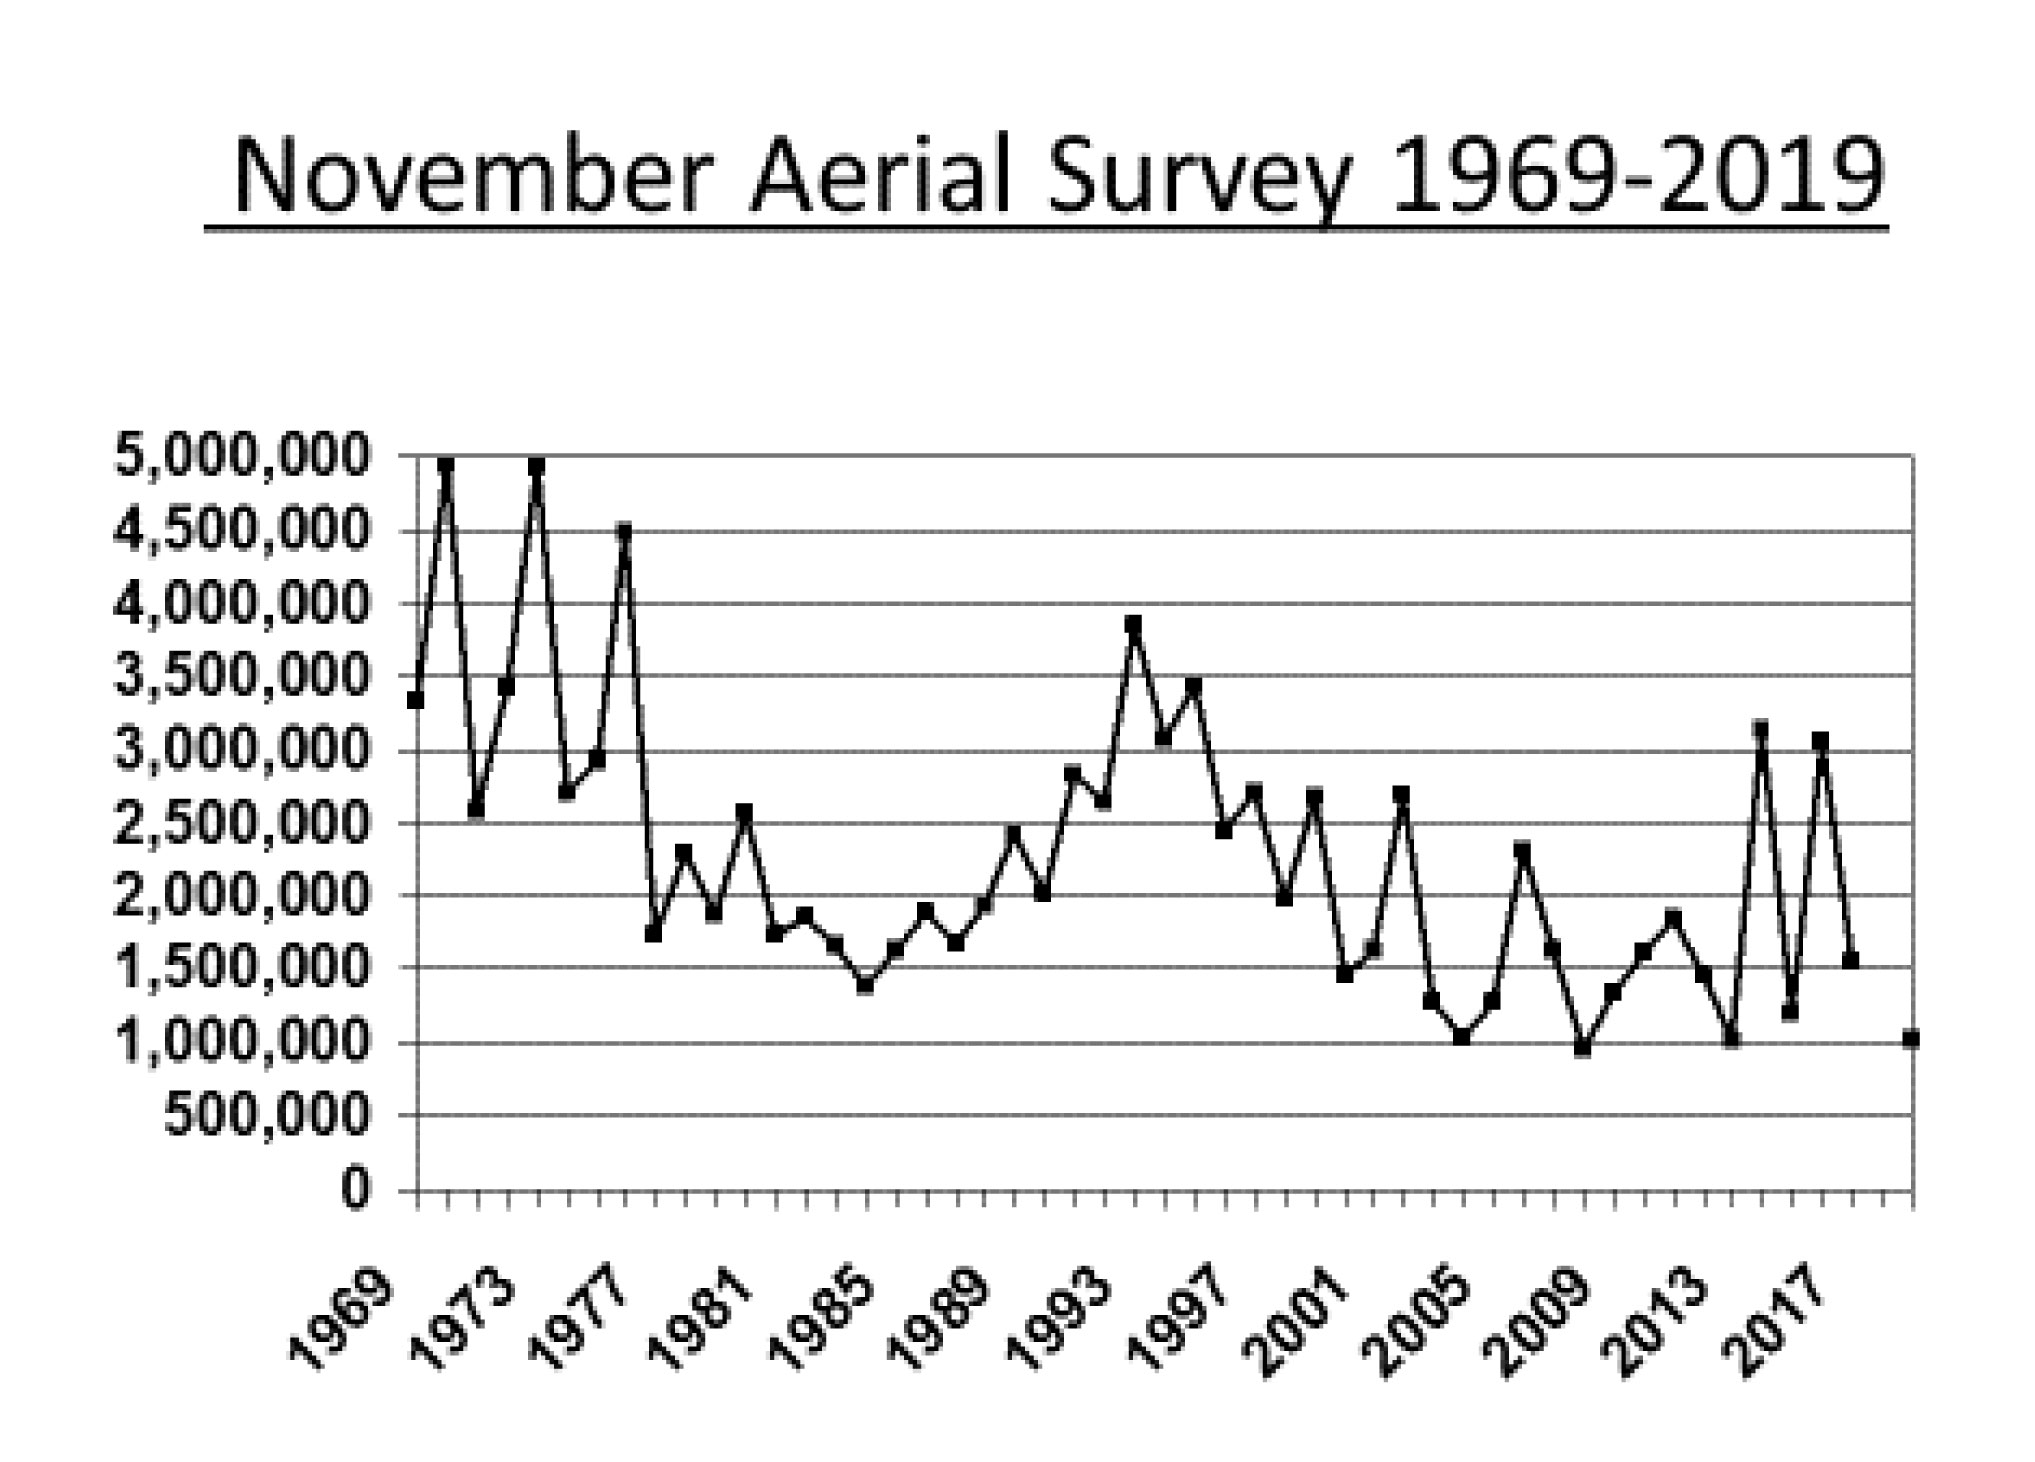 Estimates of all ducks in surveyed area of coastal Louisiana in November 1969-2019. Survey was not completed in 2018.